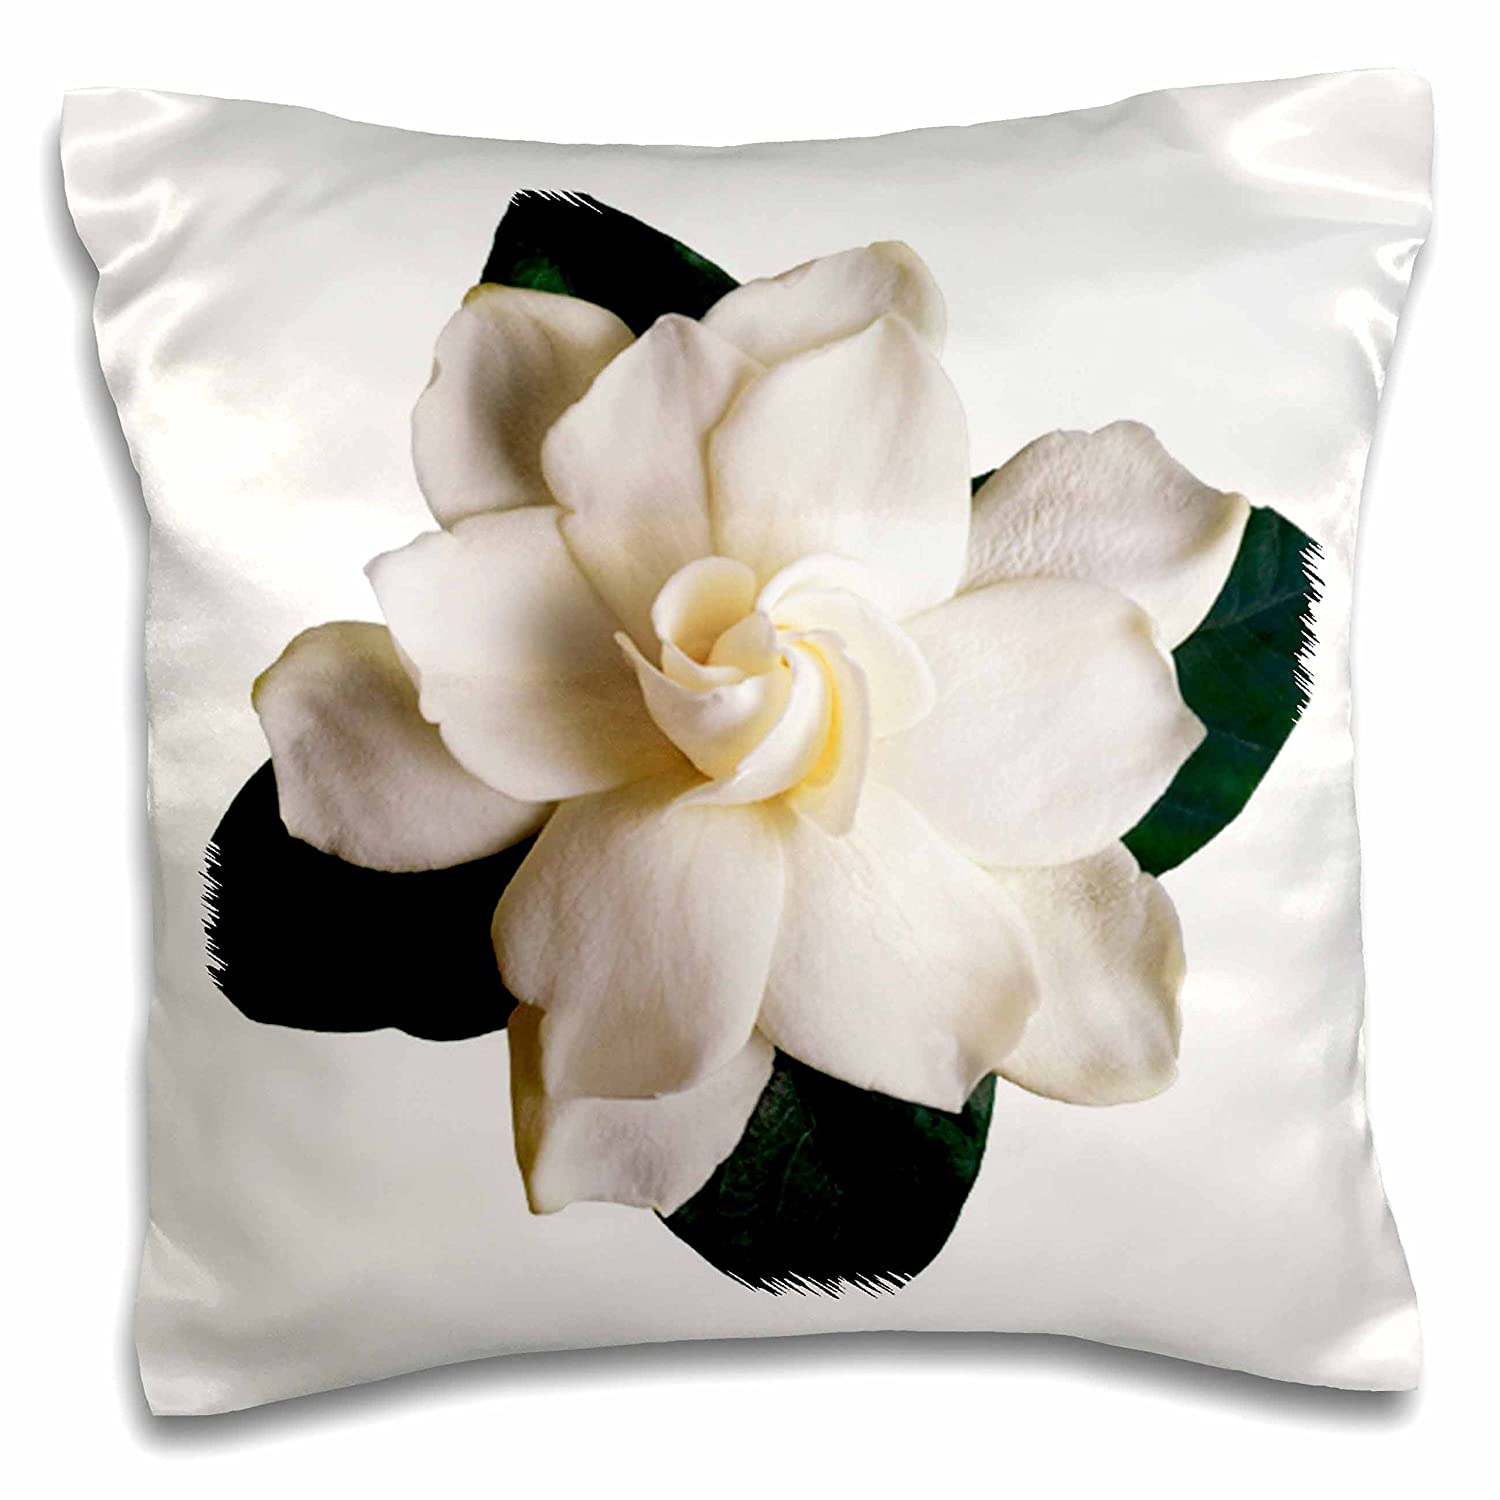 3dRoseGardenia Throw Pillow Covers 16 x 16 White